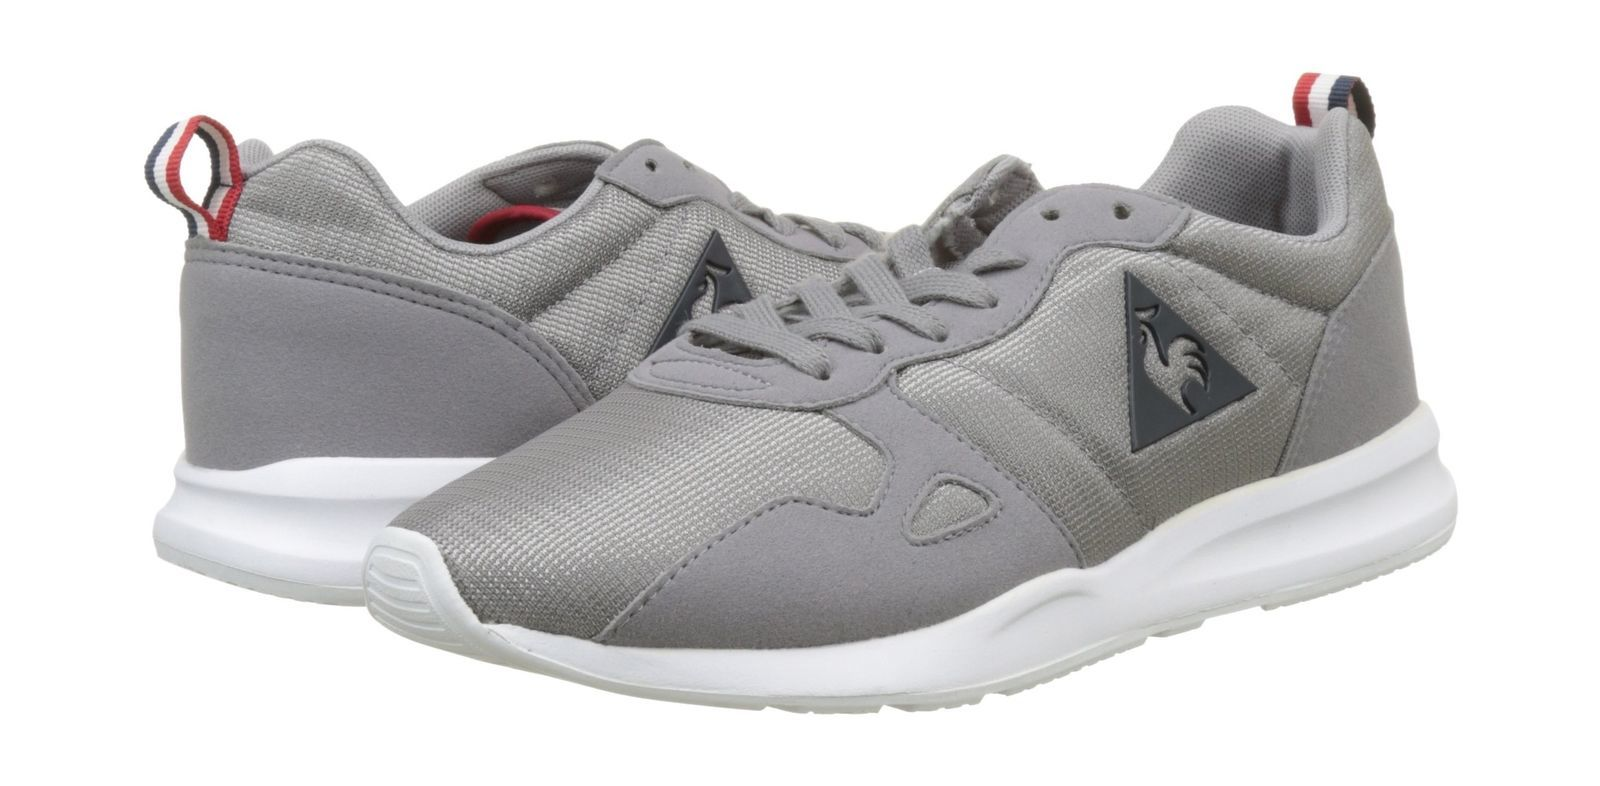 Unisex Adults LCS R600 Mesh Bass Trainers, Blue Le Coq Sportif